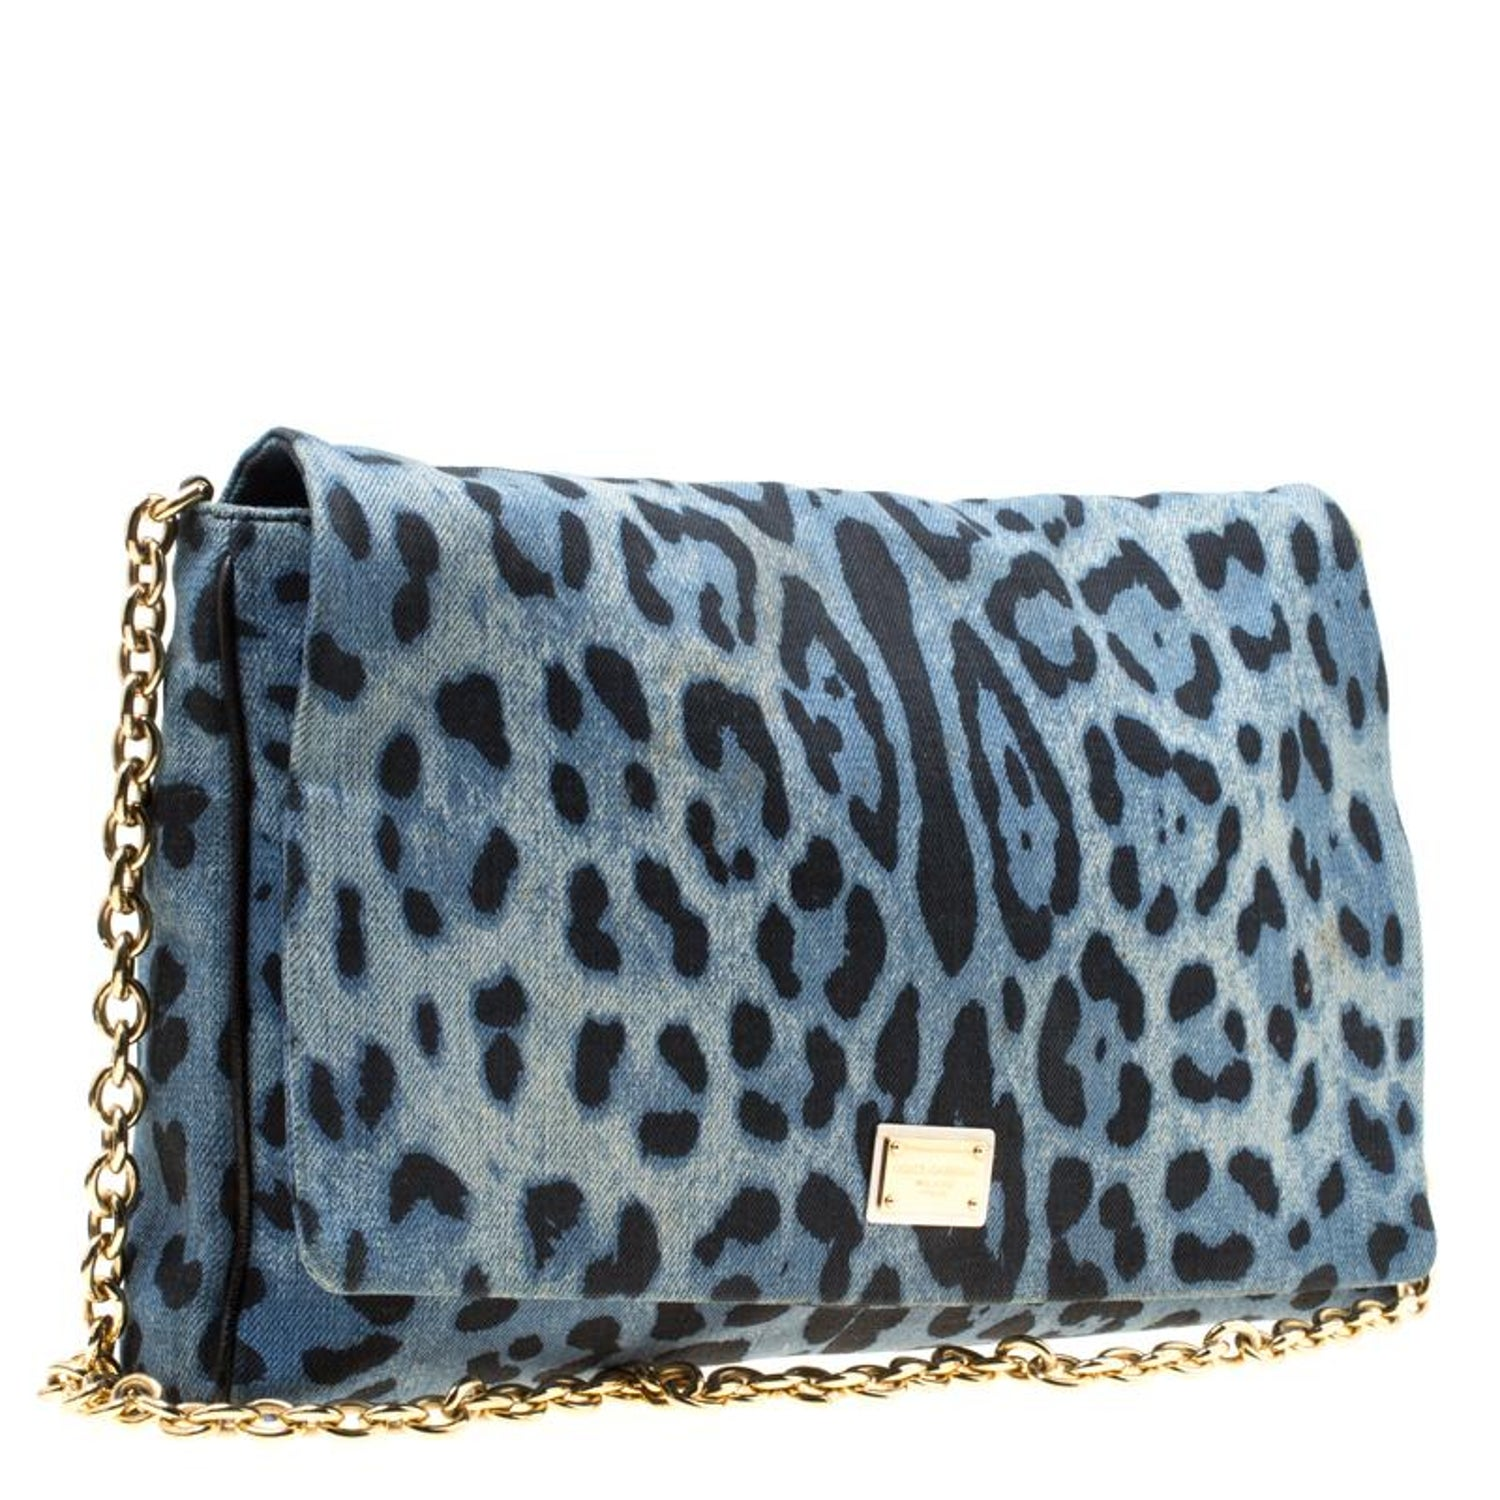 9ebc87650d Dolce and Gabbana Blue/Black Leopard Print Denim Chain Shoulder Bag For  Sale at 1stdibs